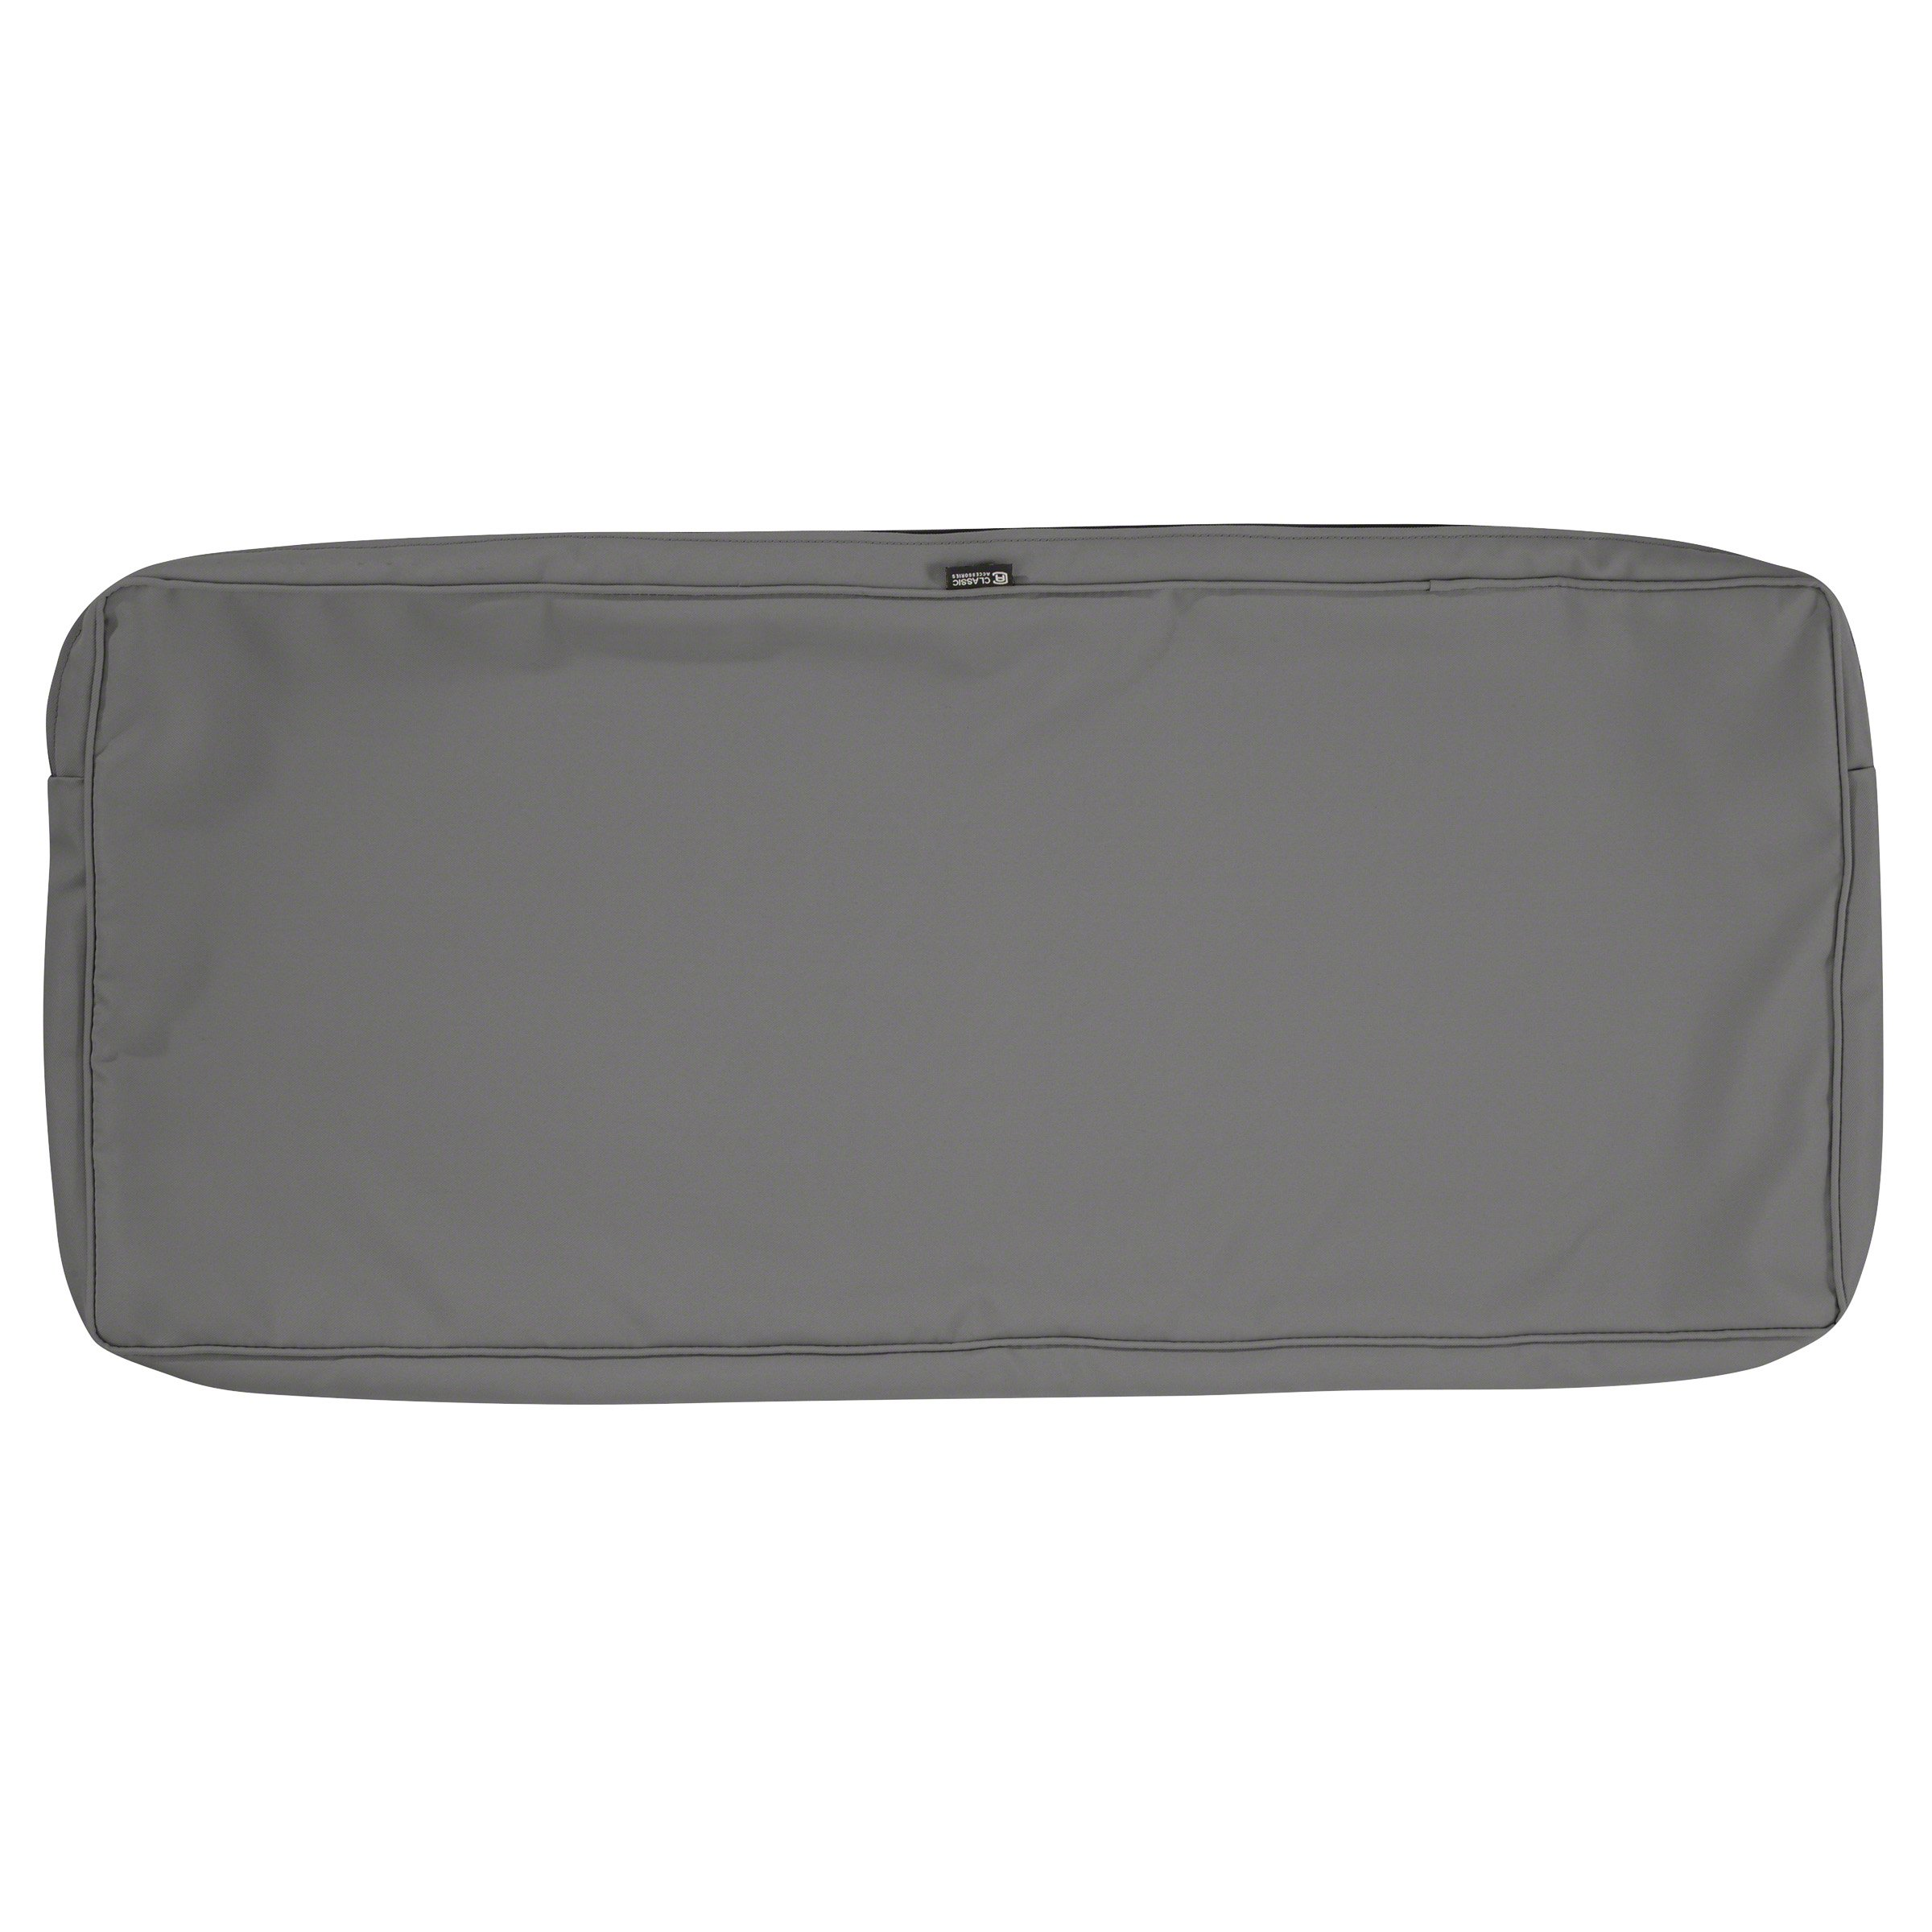 Classic Accessories Montlake Patio Bench Seat Cushion Slip Cover, Light Charcoal, 48x18x3